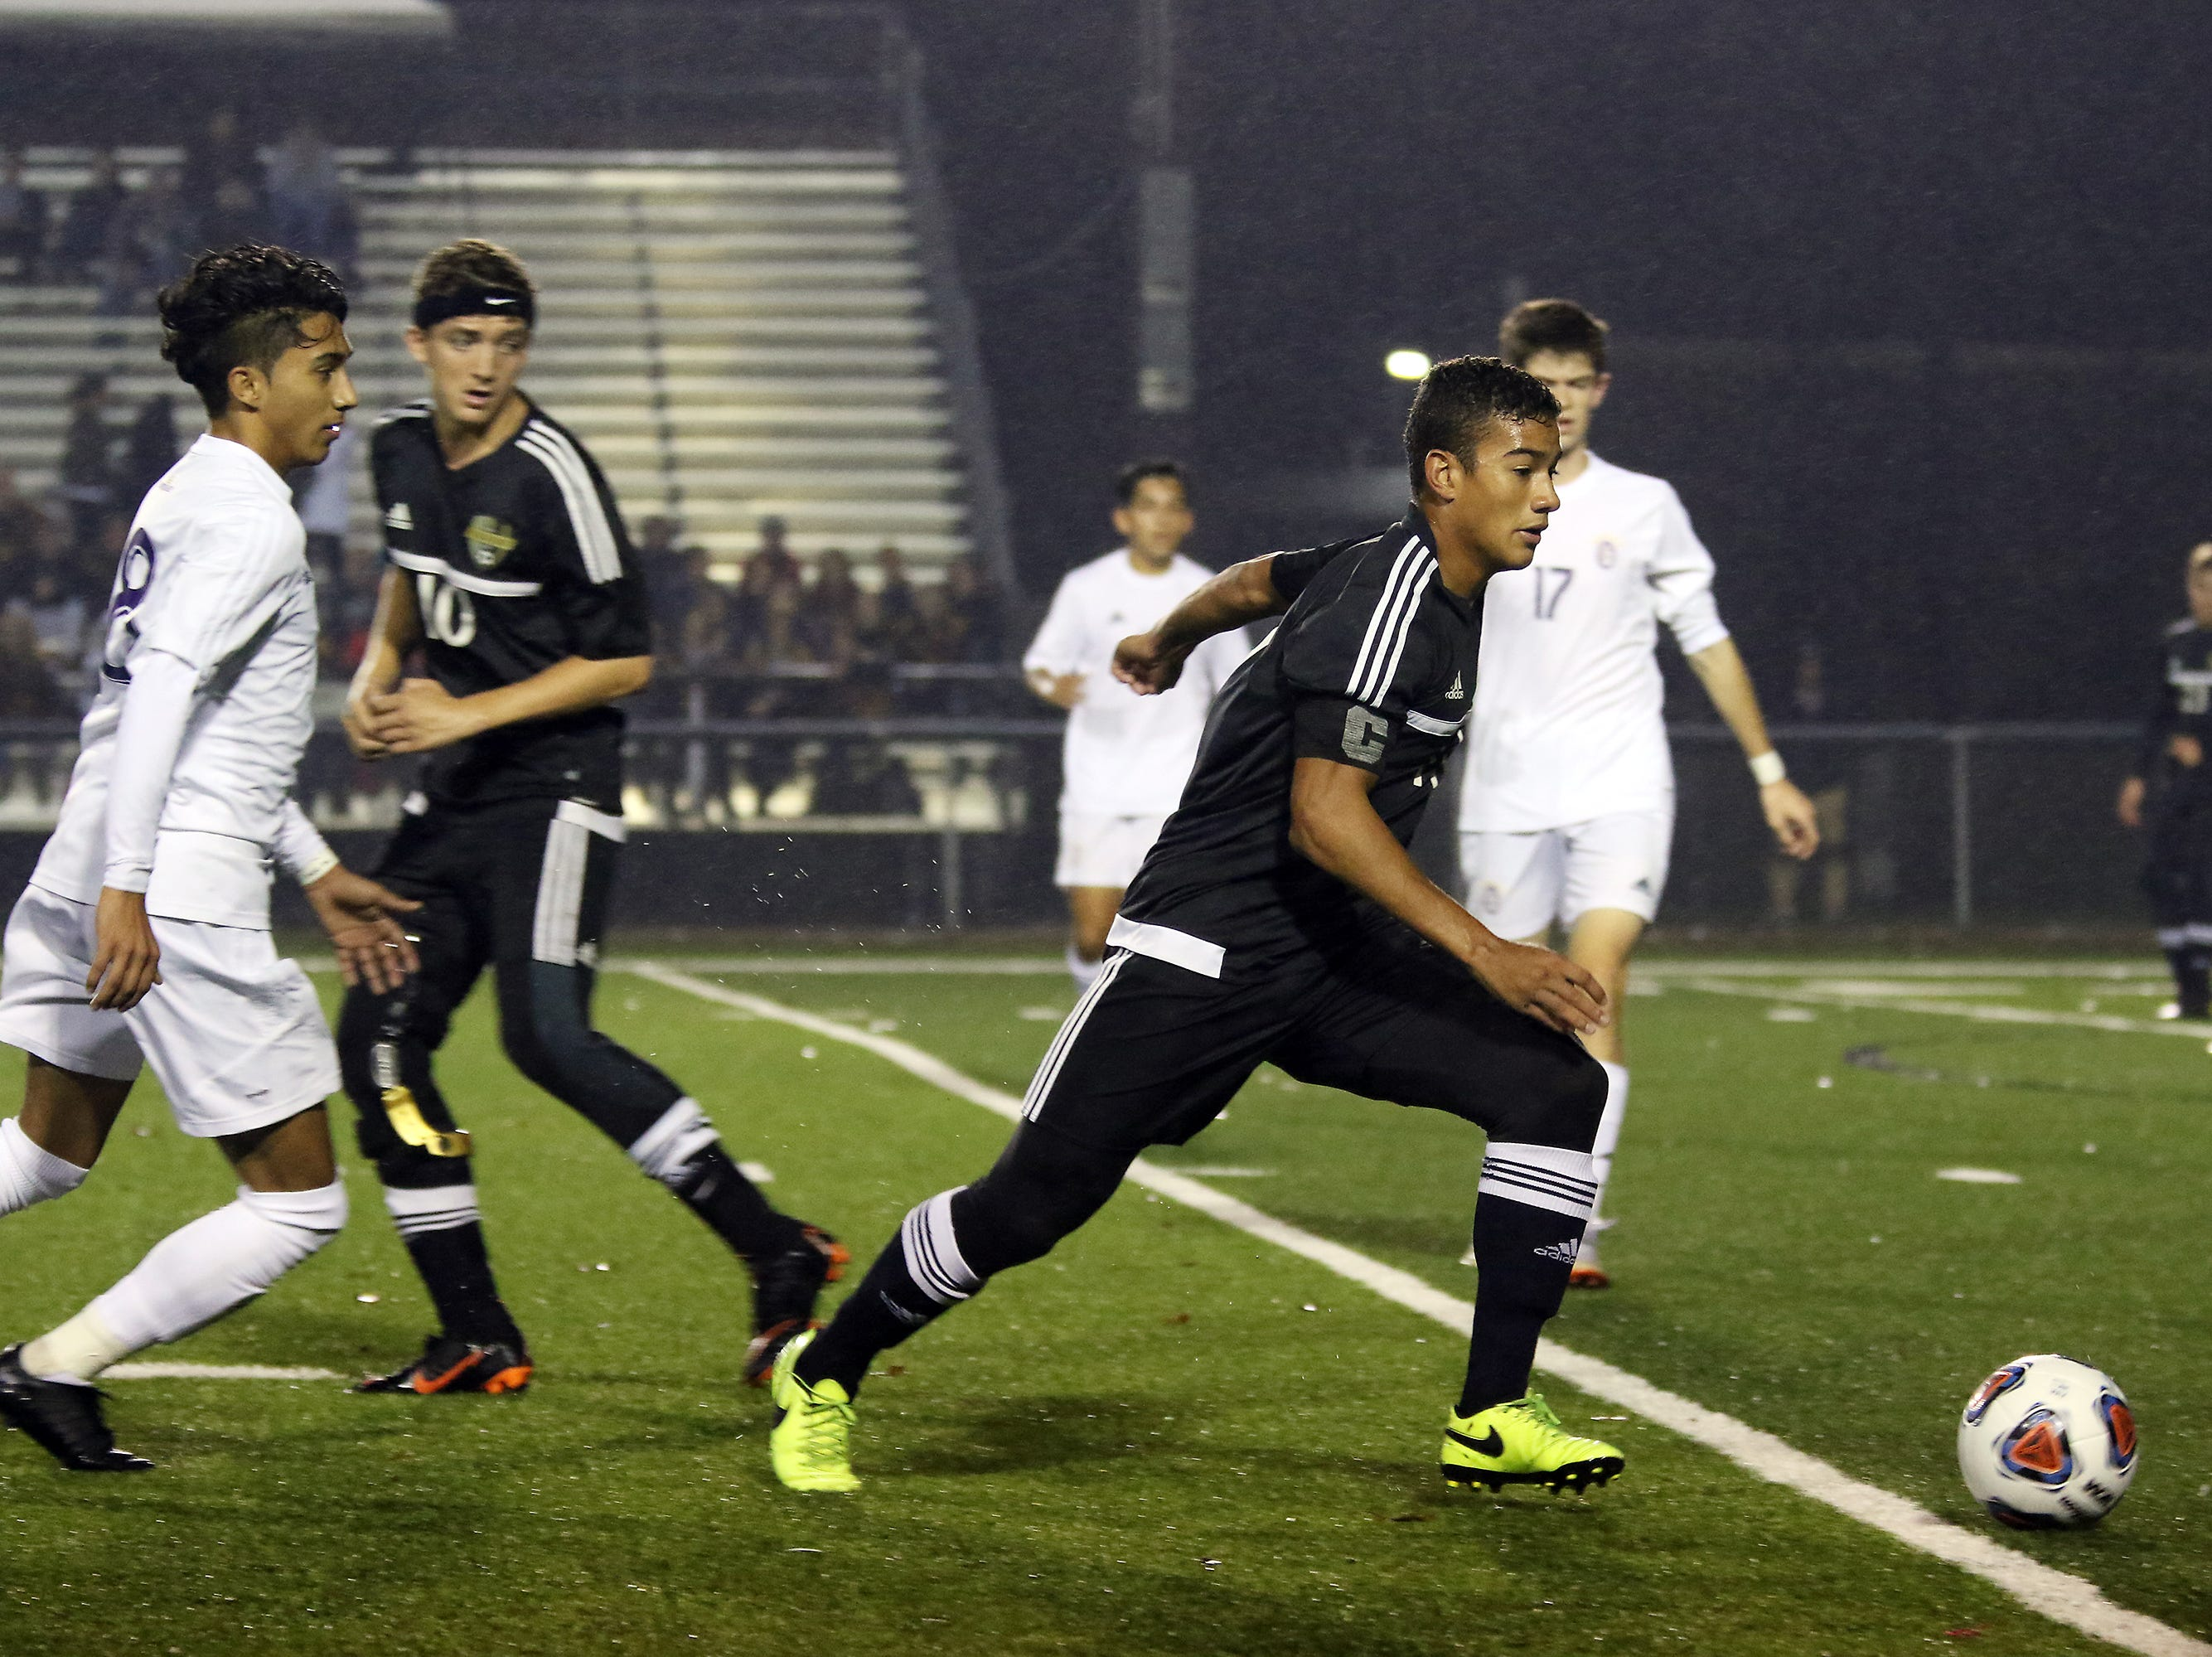 River View's Sean Watts moves with the ball against DeSales.